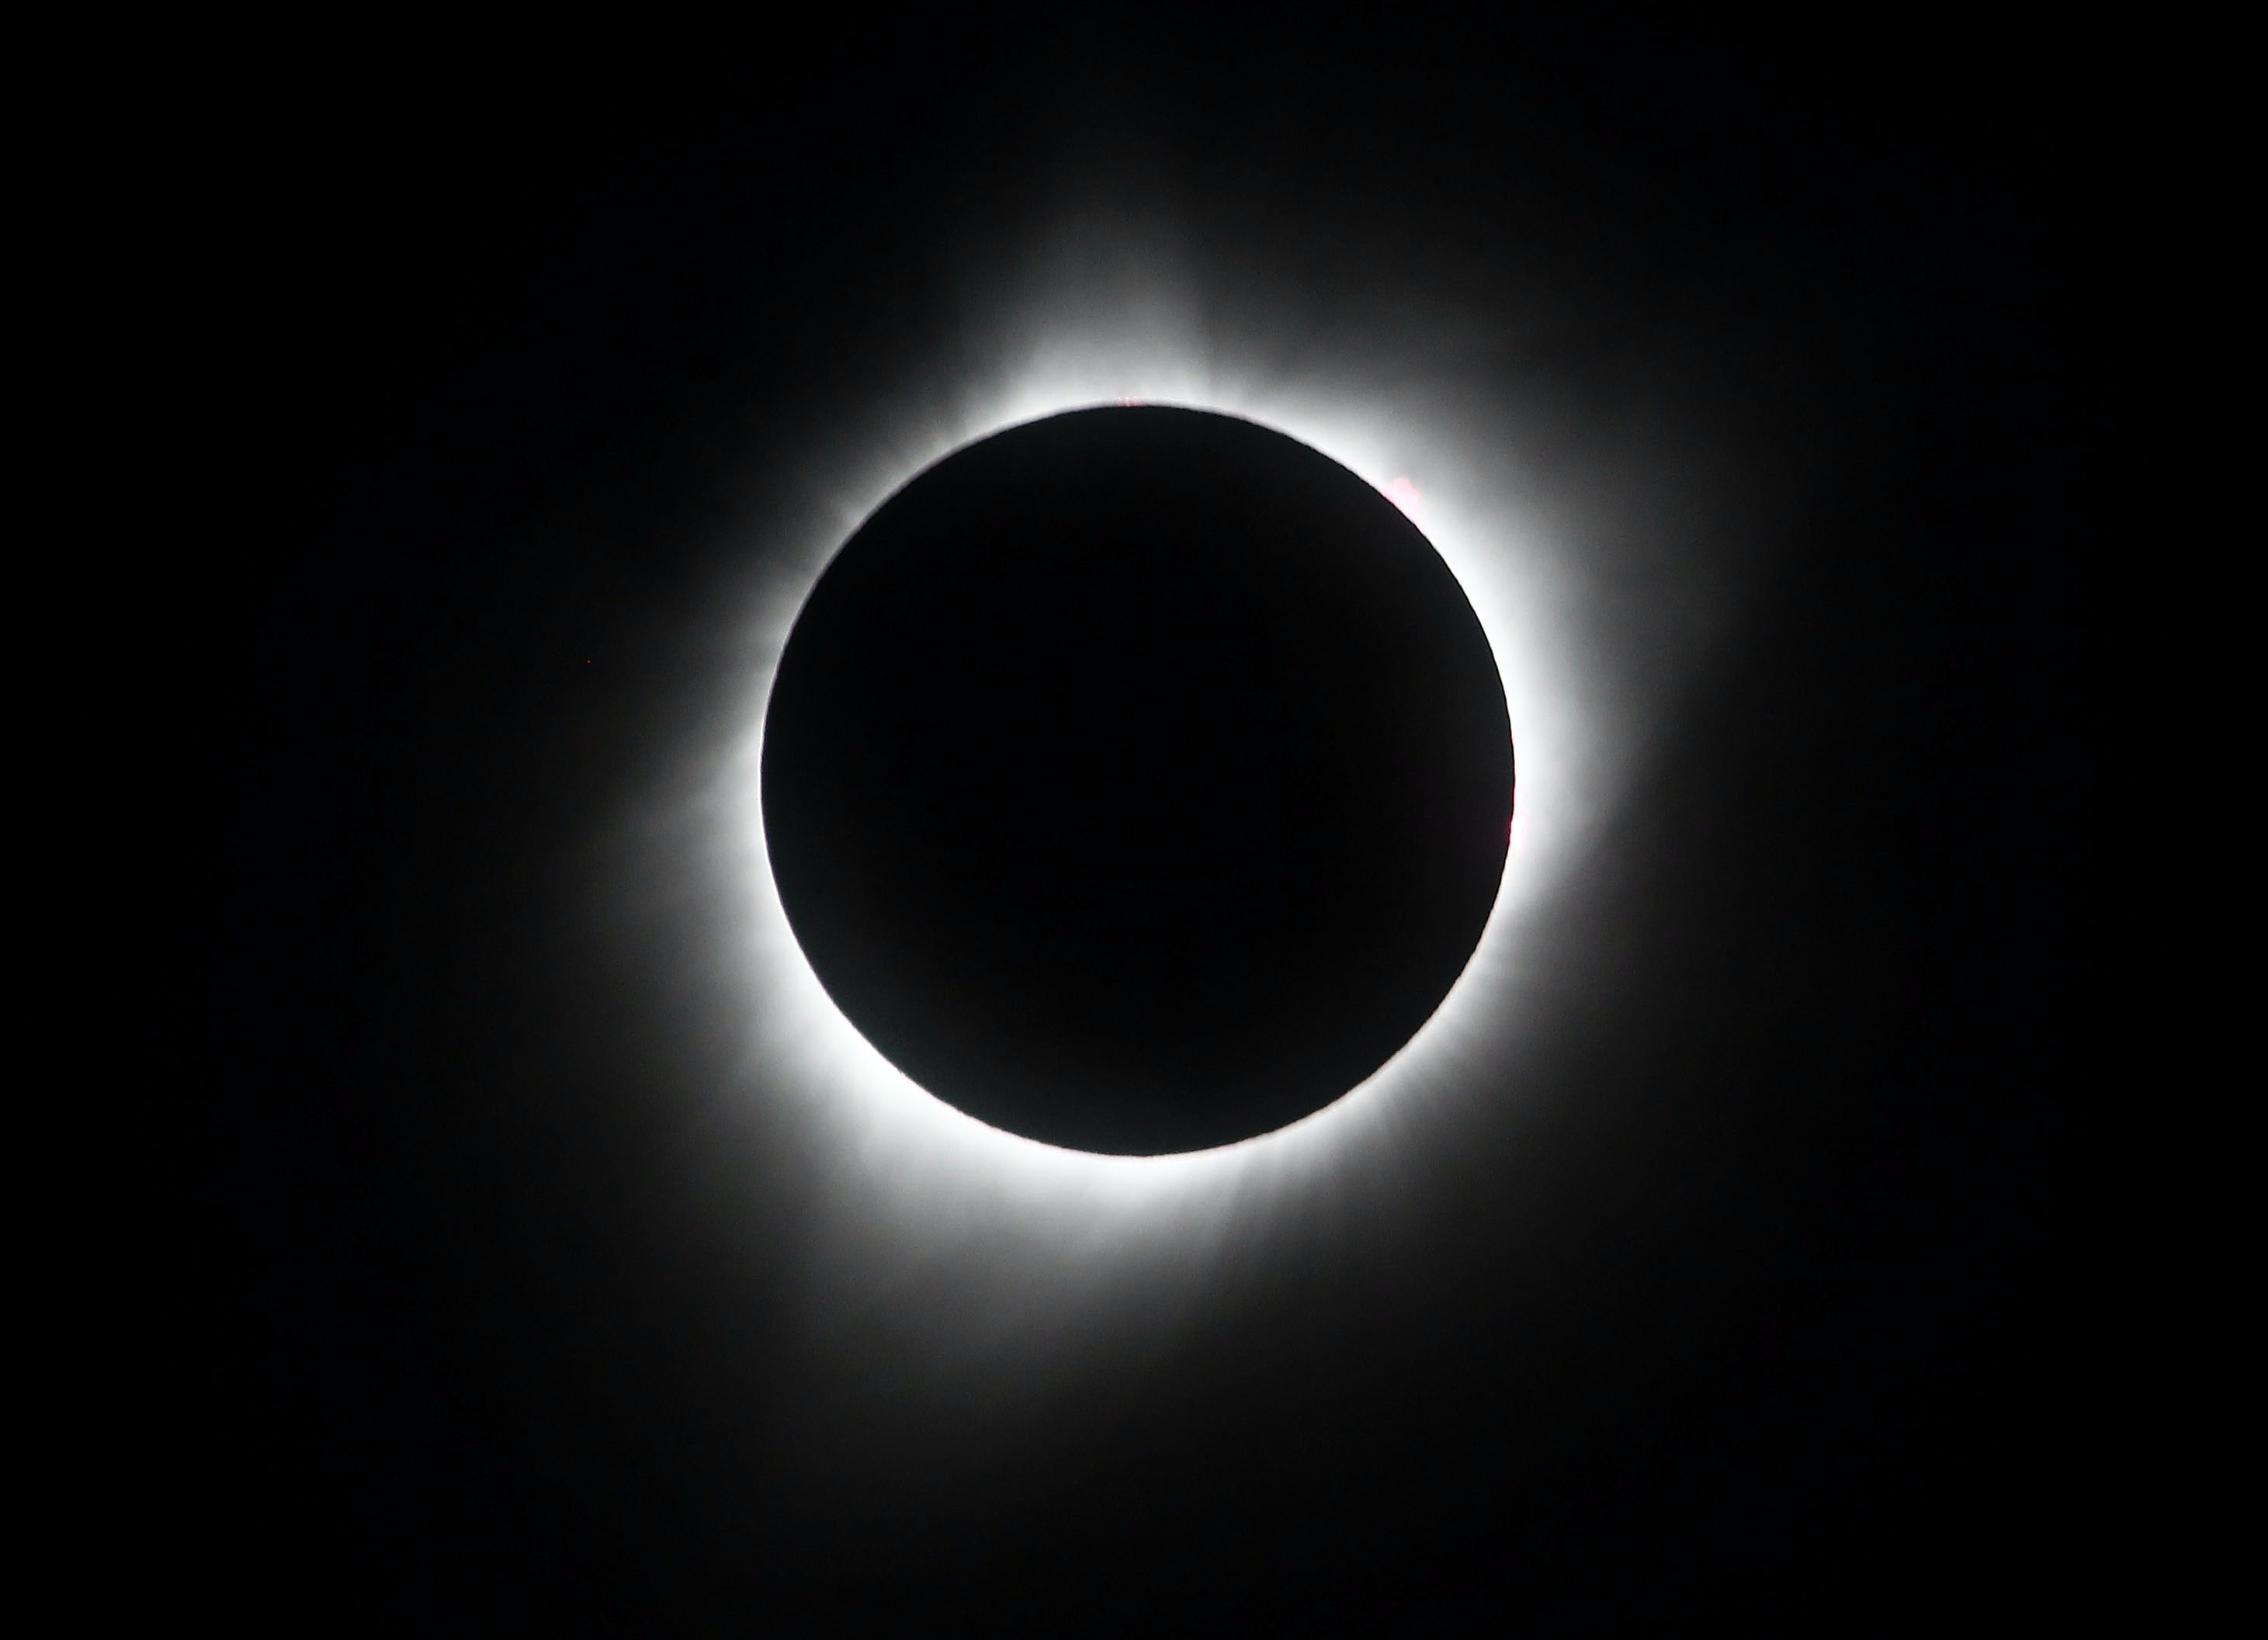 Can't Sleep After The Eclipse? This Could Be The Reason Why